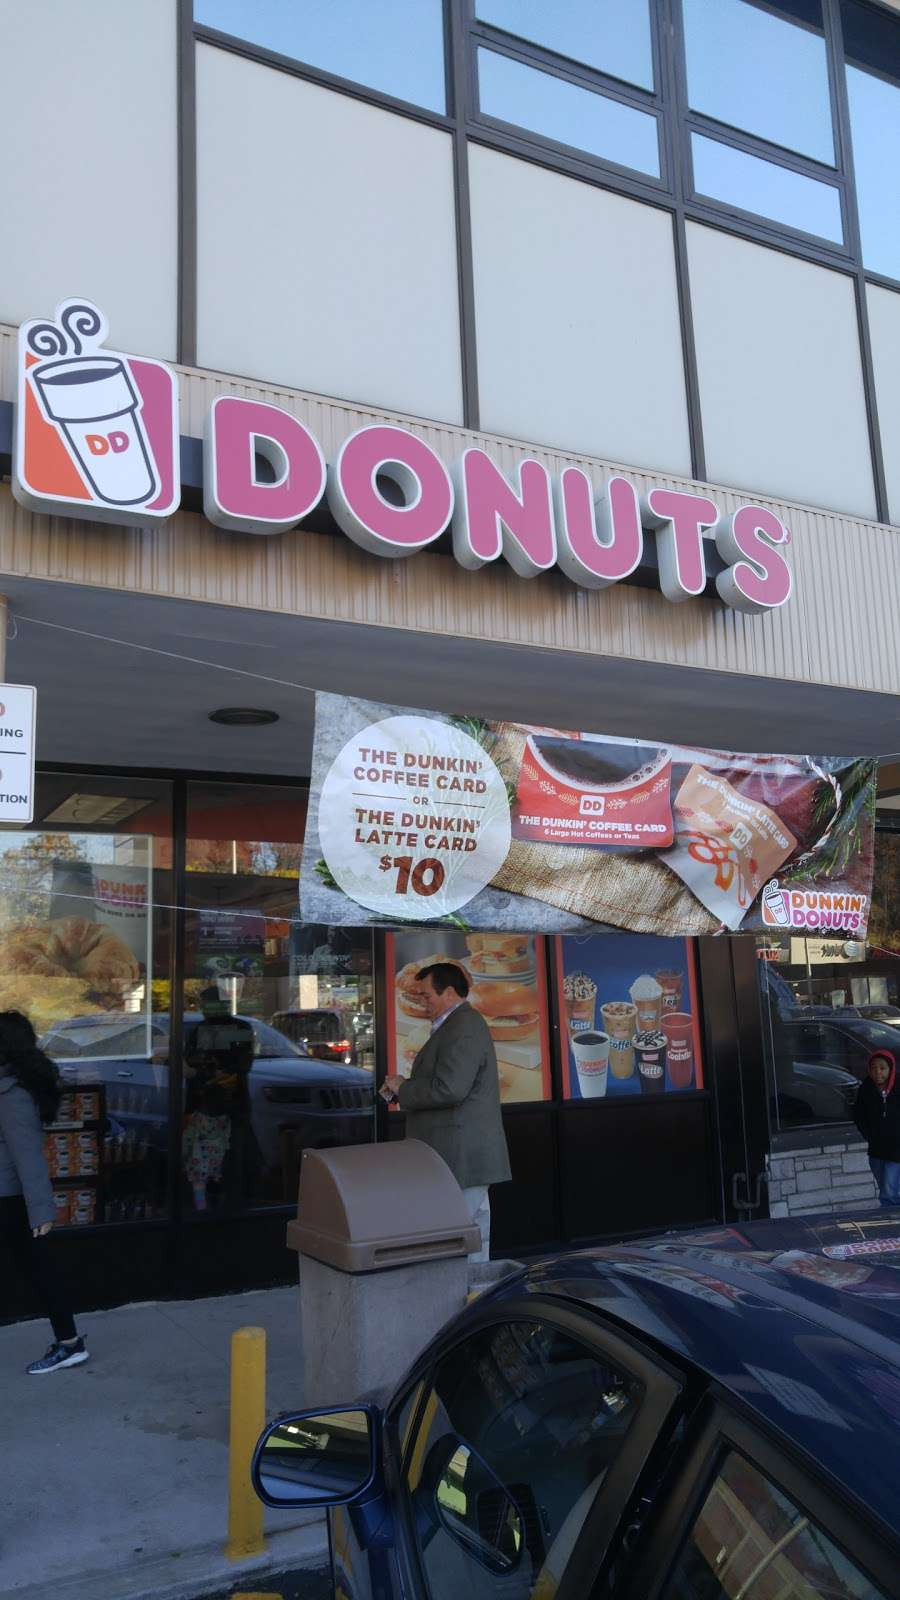 Dunkin Donuts - cafe  | Photo 10 of 10 | Address: 850 Bronx River Rd, Yonkers, NY 10708, USA | Phone: (914) 237-5921